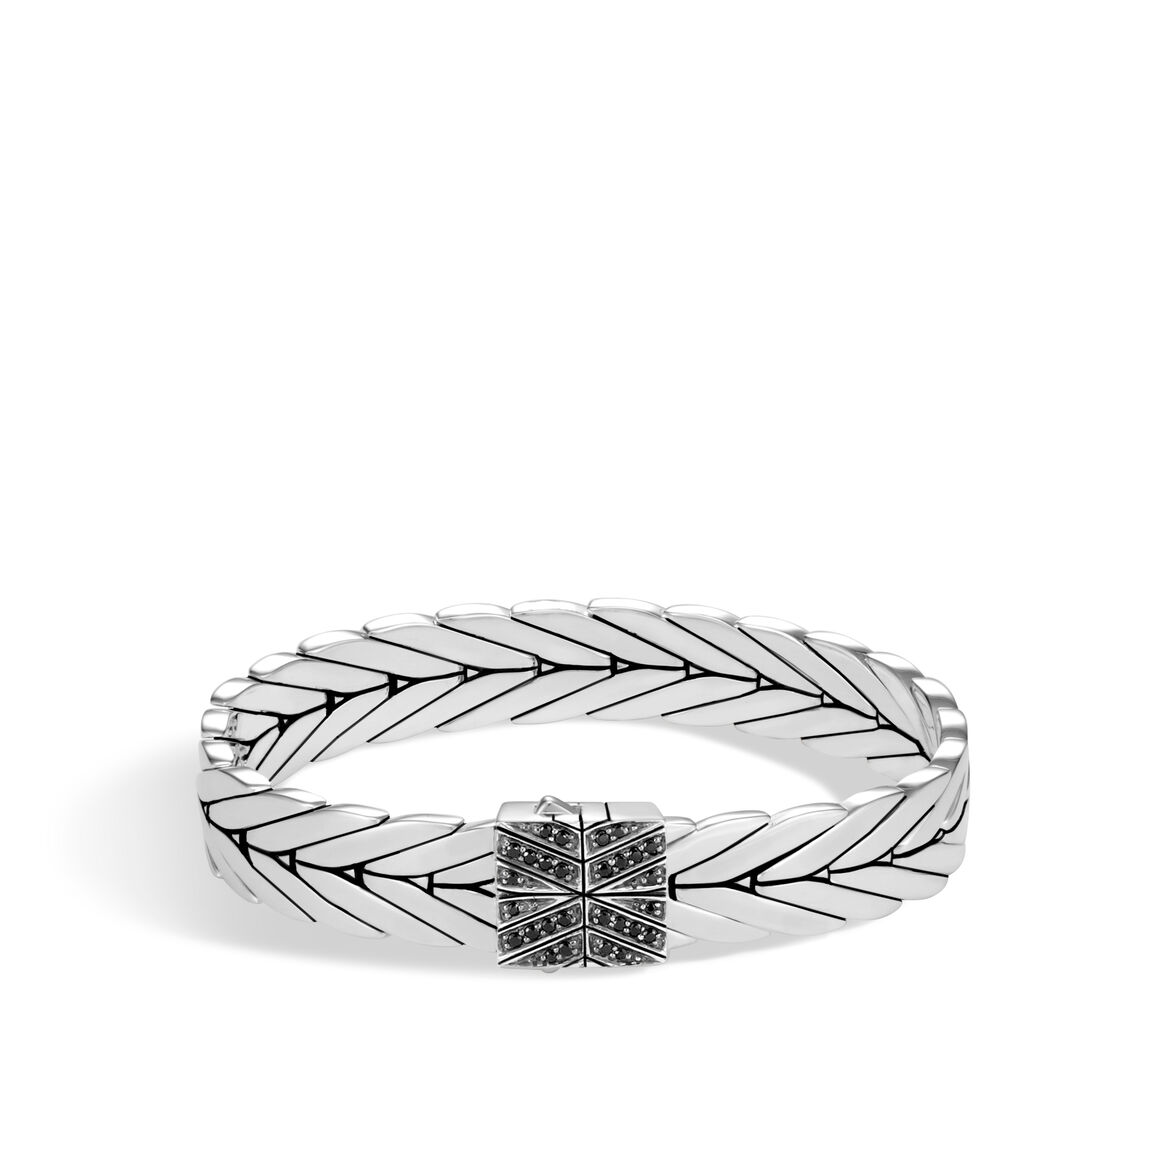 Modern Chain 11MM Bracelet in Silver with Gemstone